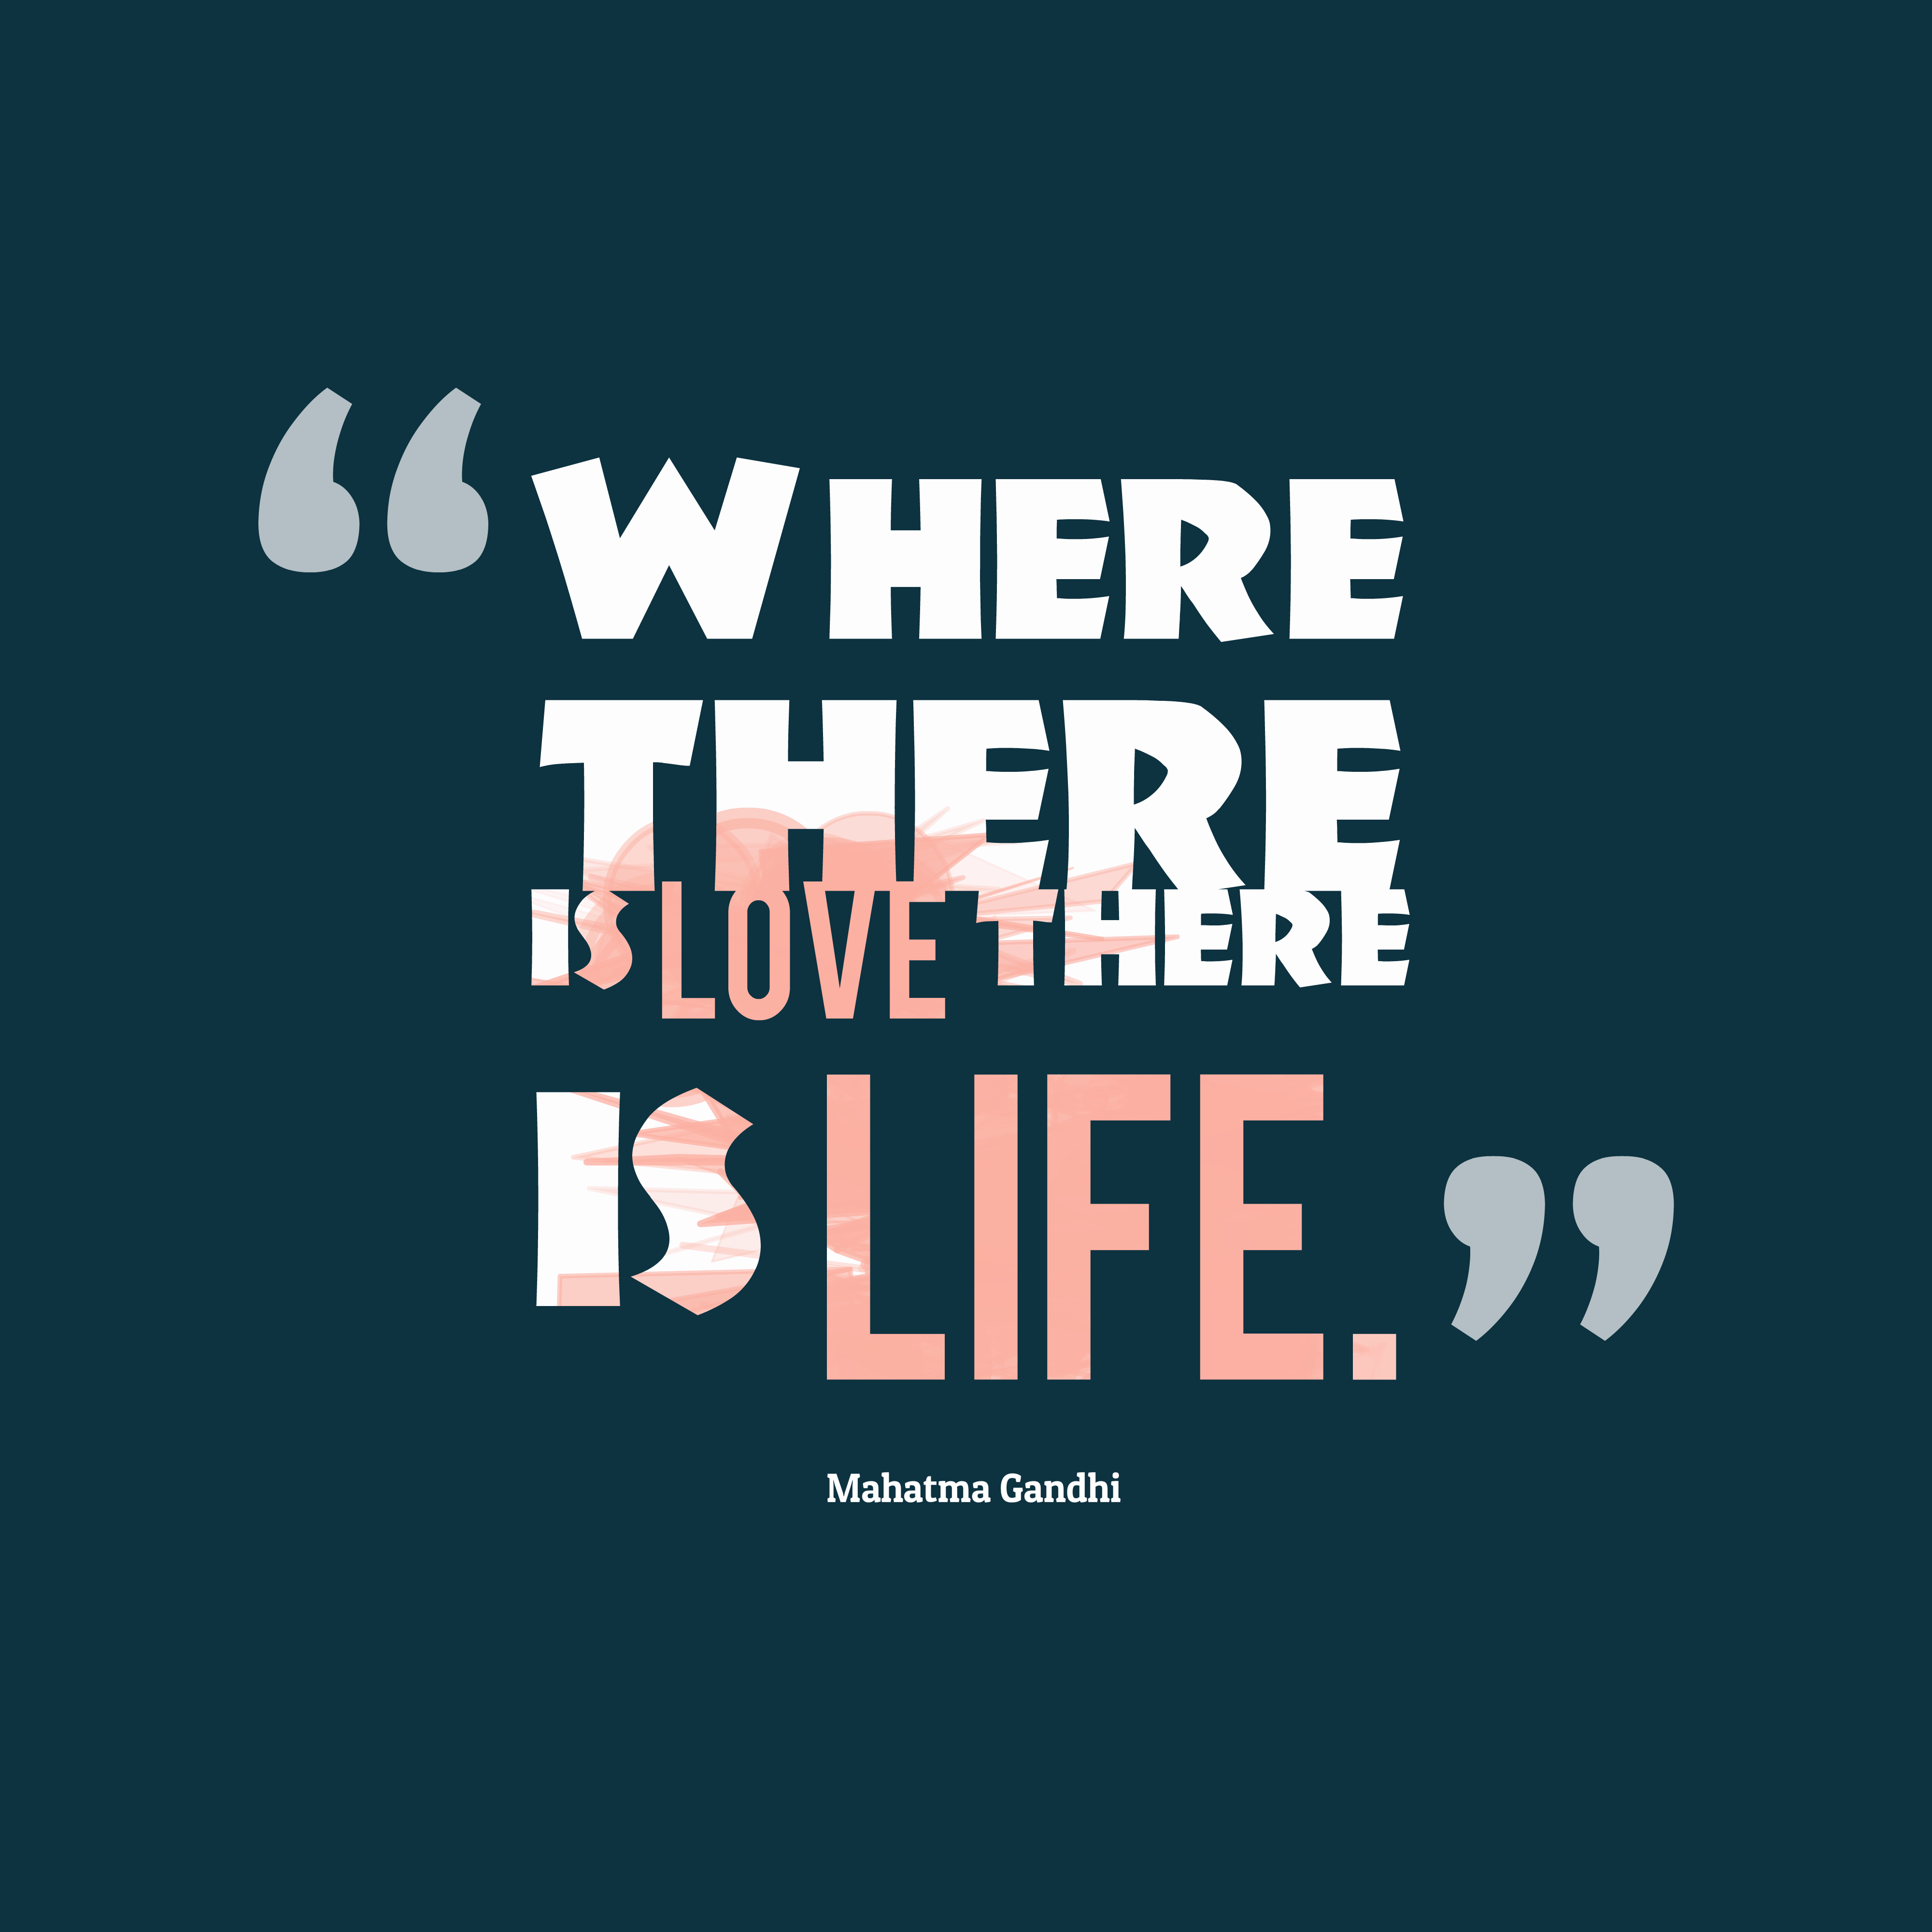 Quotes By Gandhi About Love : Get high resolution using text from mahatma gandhi quote